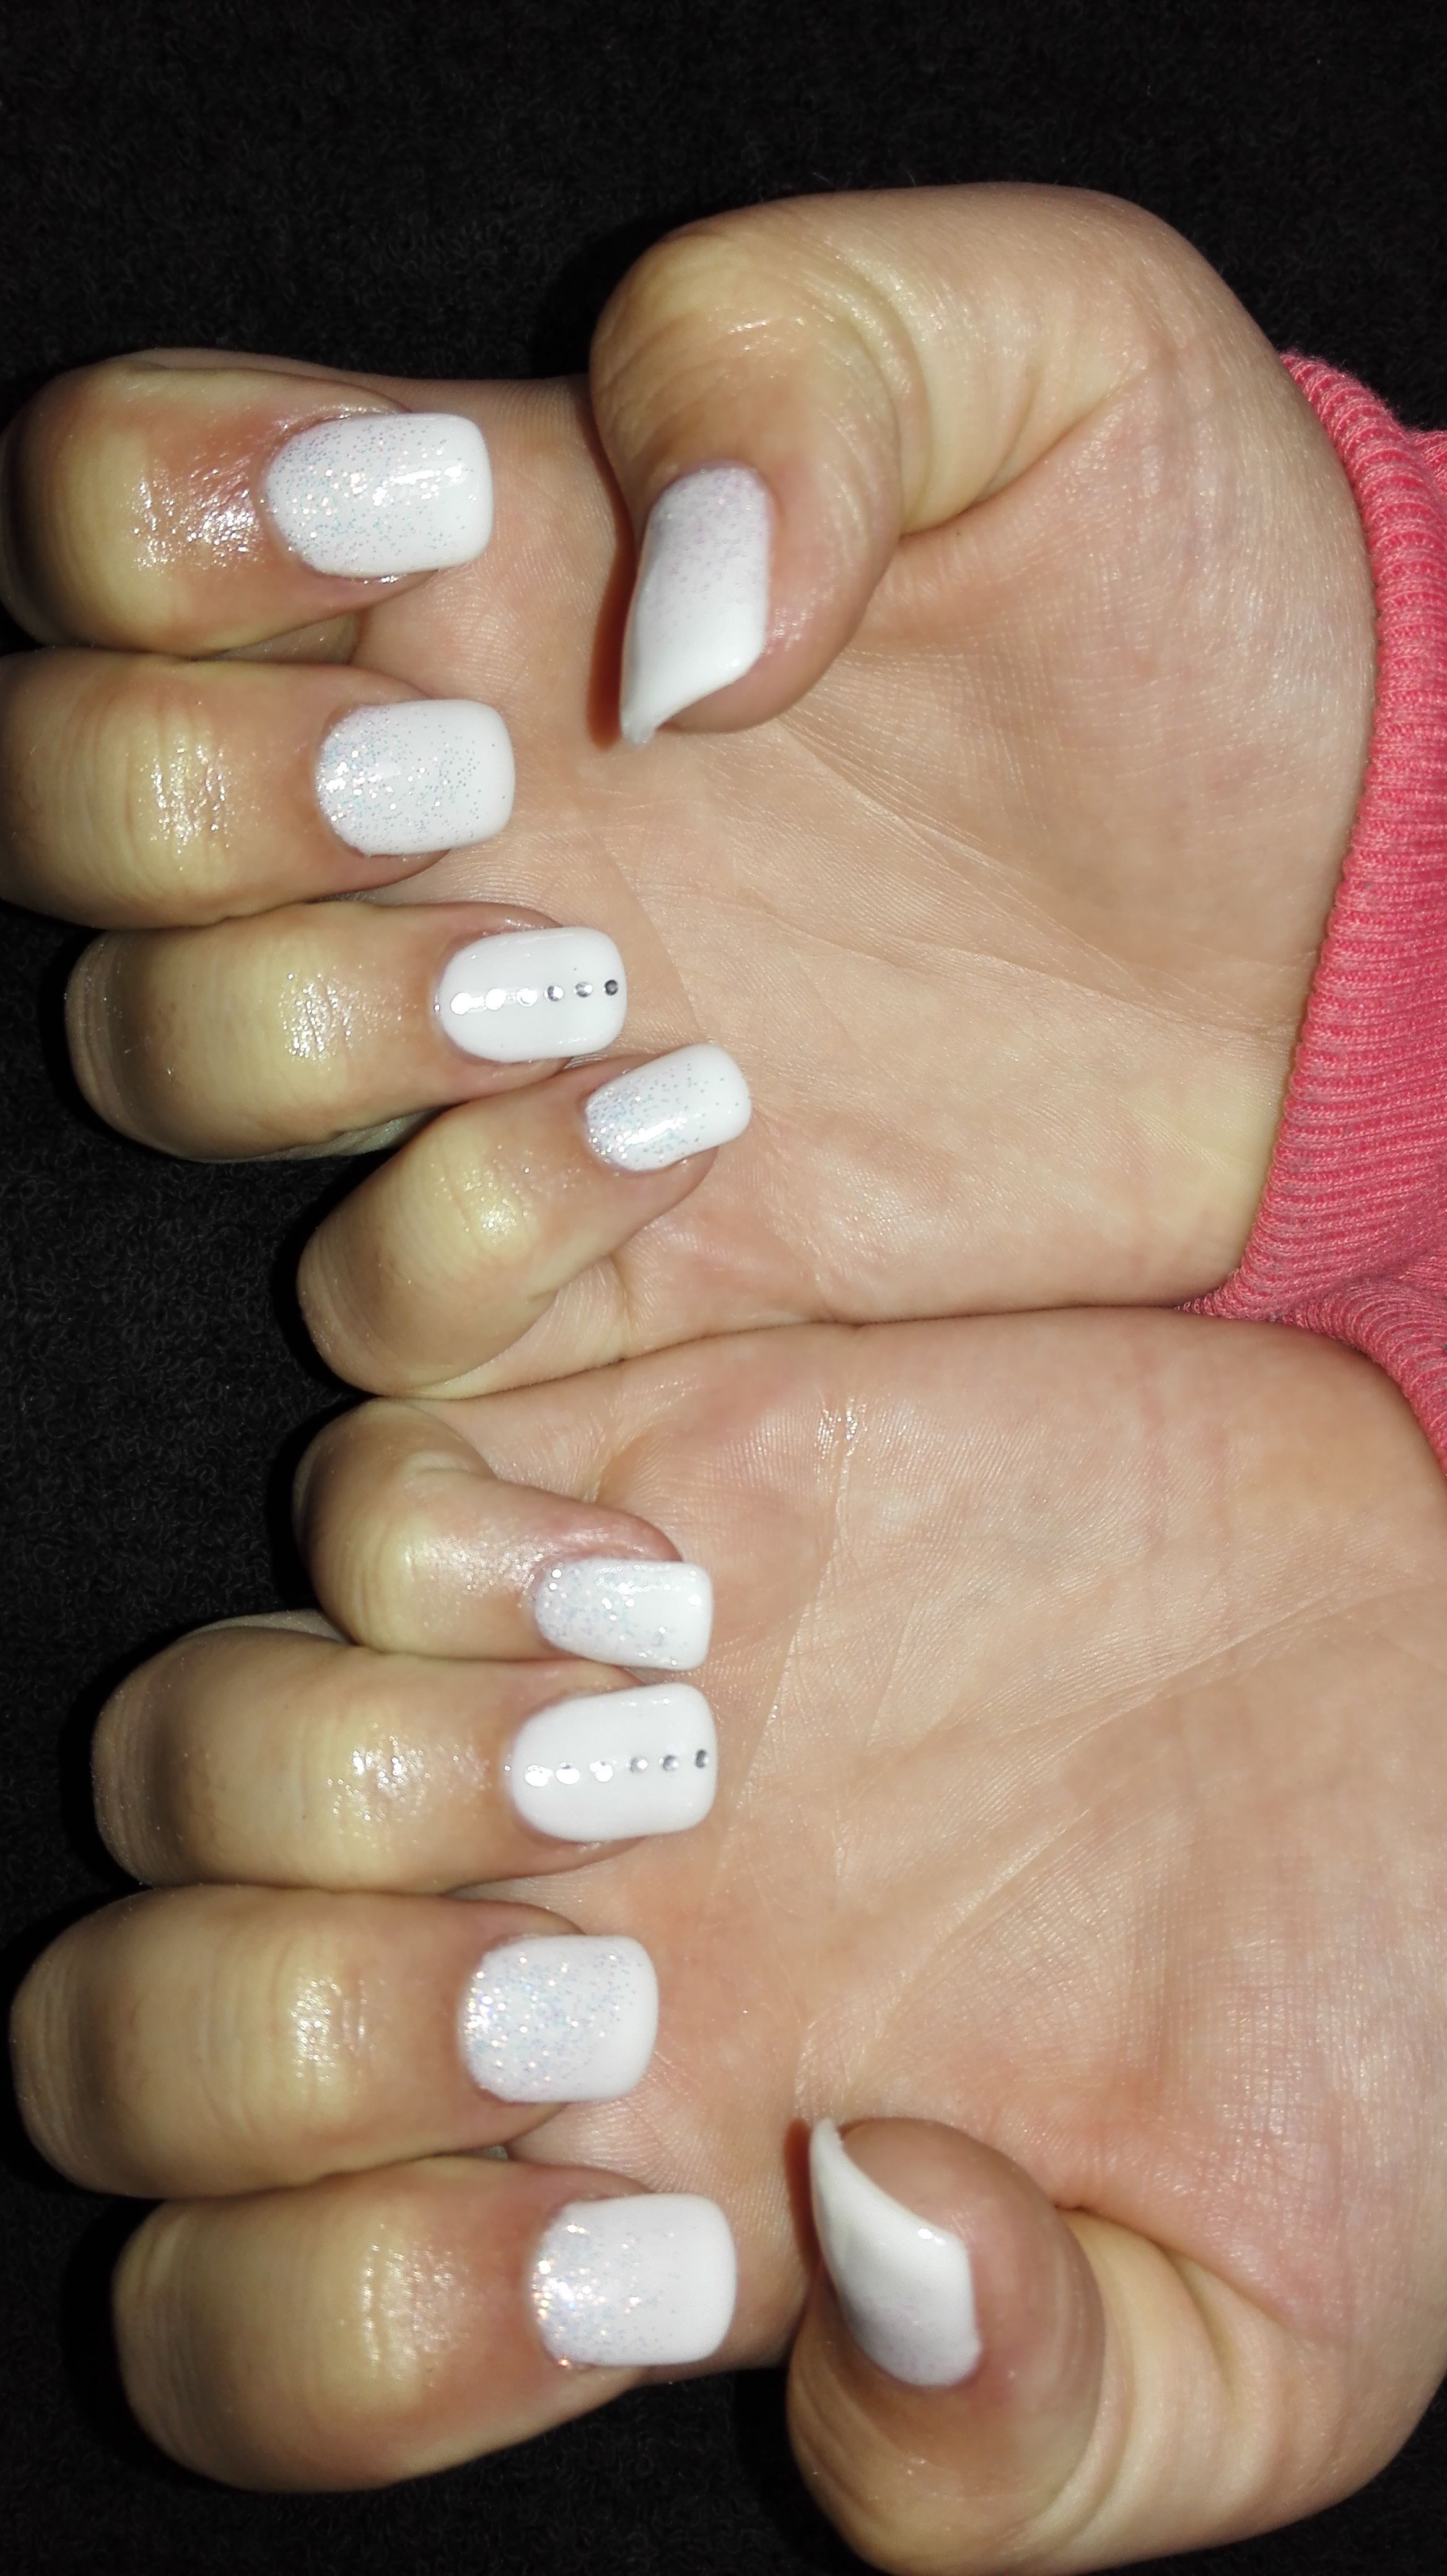 Testa Rossa Beauty East Rand Nail Technician Johannesburg Technician Mobile Technician Manicure Easy Nail Art Easy Manicure Pastel Blue Nails Funky Nails